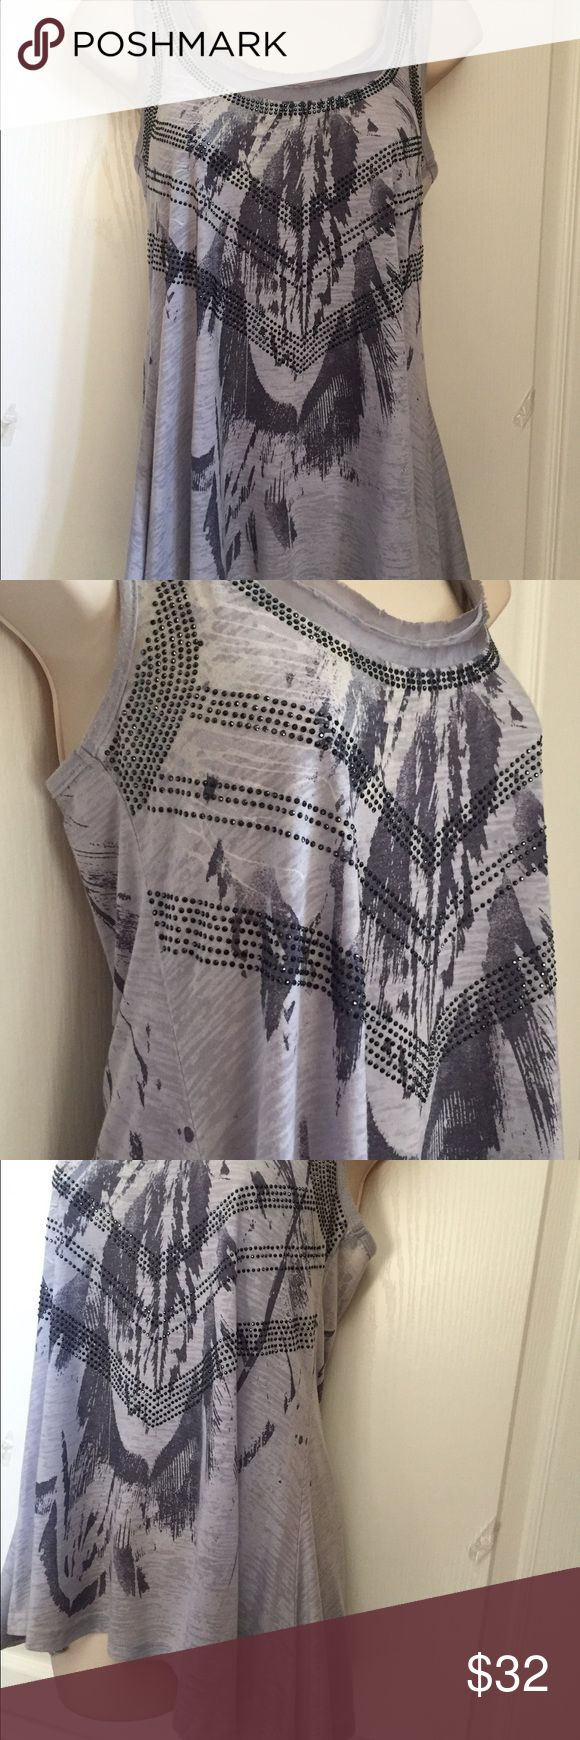 Miss Me Asymmetrical Grey Tank Grey tank with feather pattern overlaid with small grey crystals. Soft and comfortable, 65% polyester, 35% rayon. Worn but still in great condition. Miss Me Tops Tank Tops